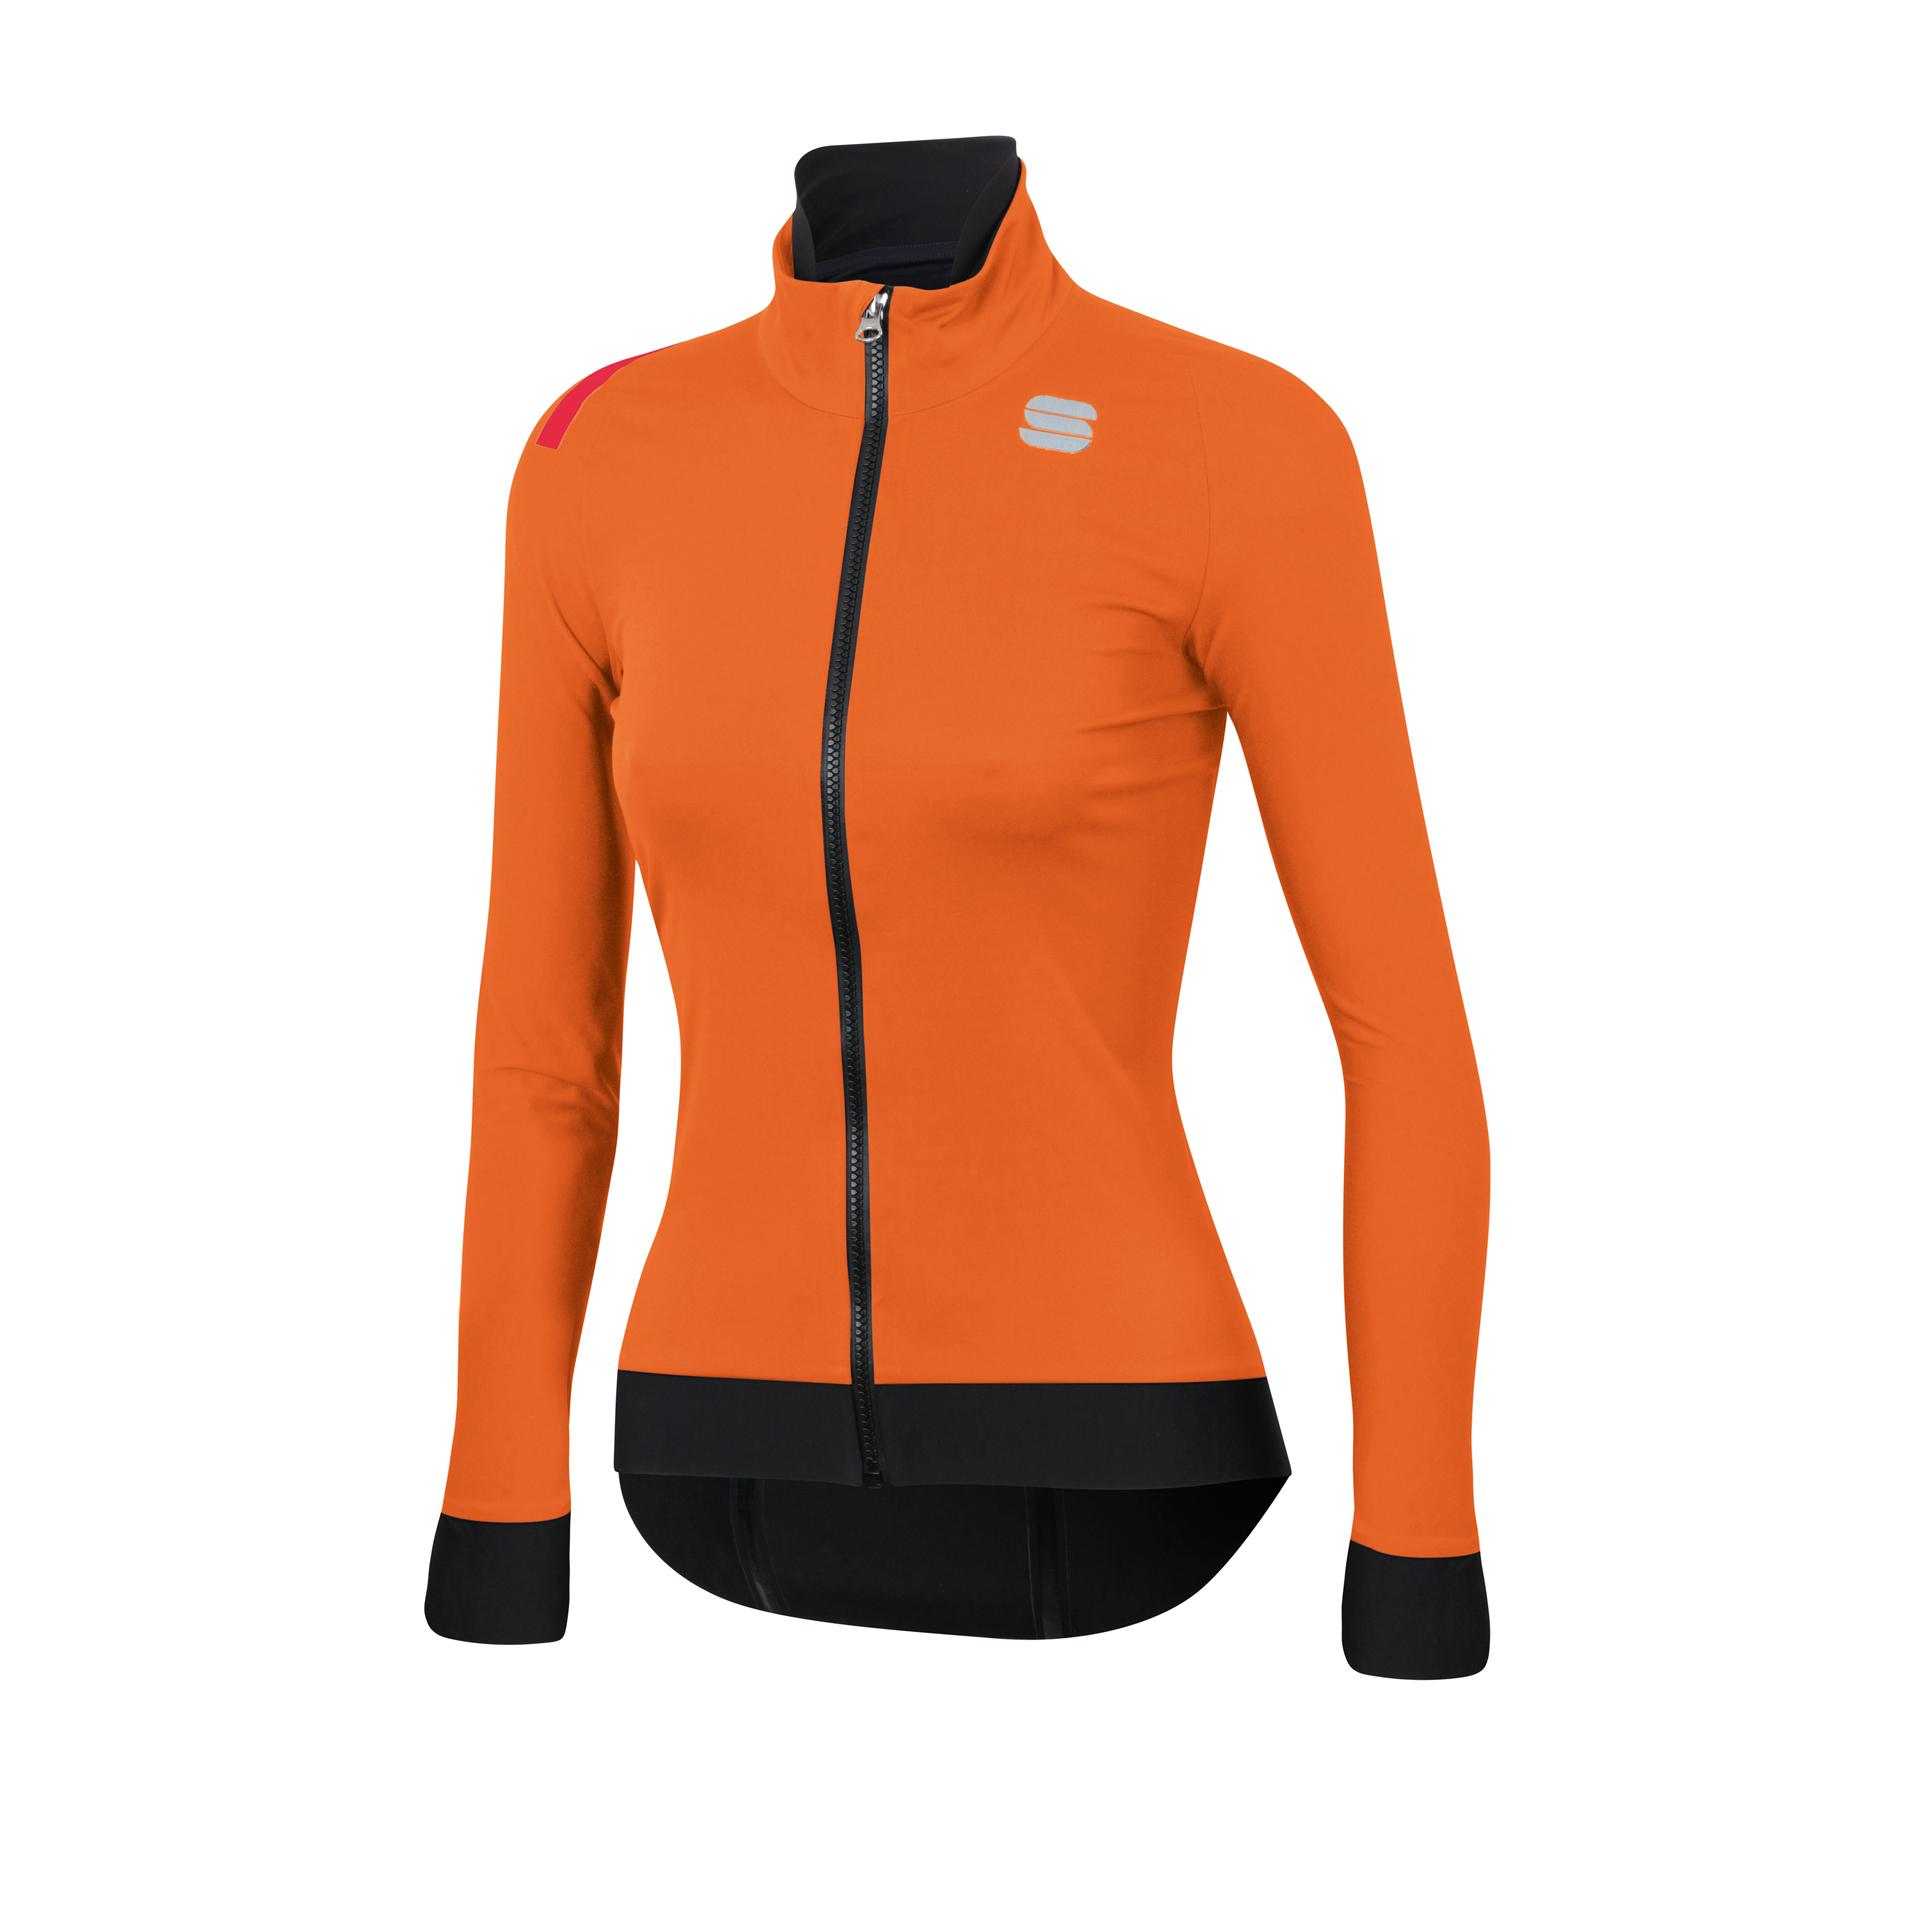 Sportful Fietsjack waterafstotend Dames Oranje / Fiandre Pro W Jacket-Orange Sdr